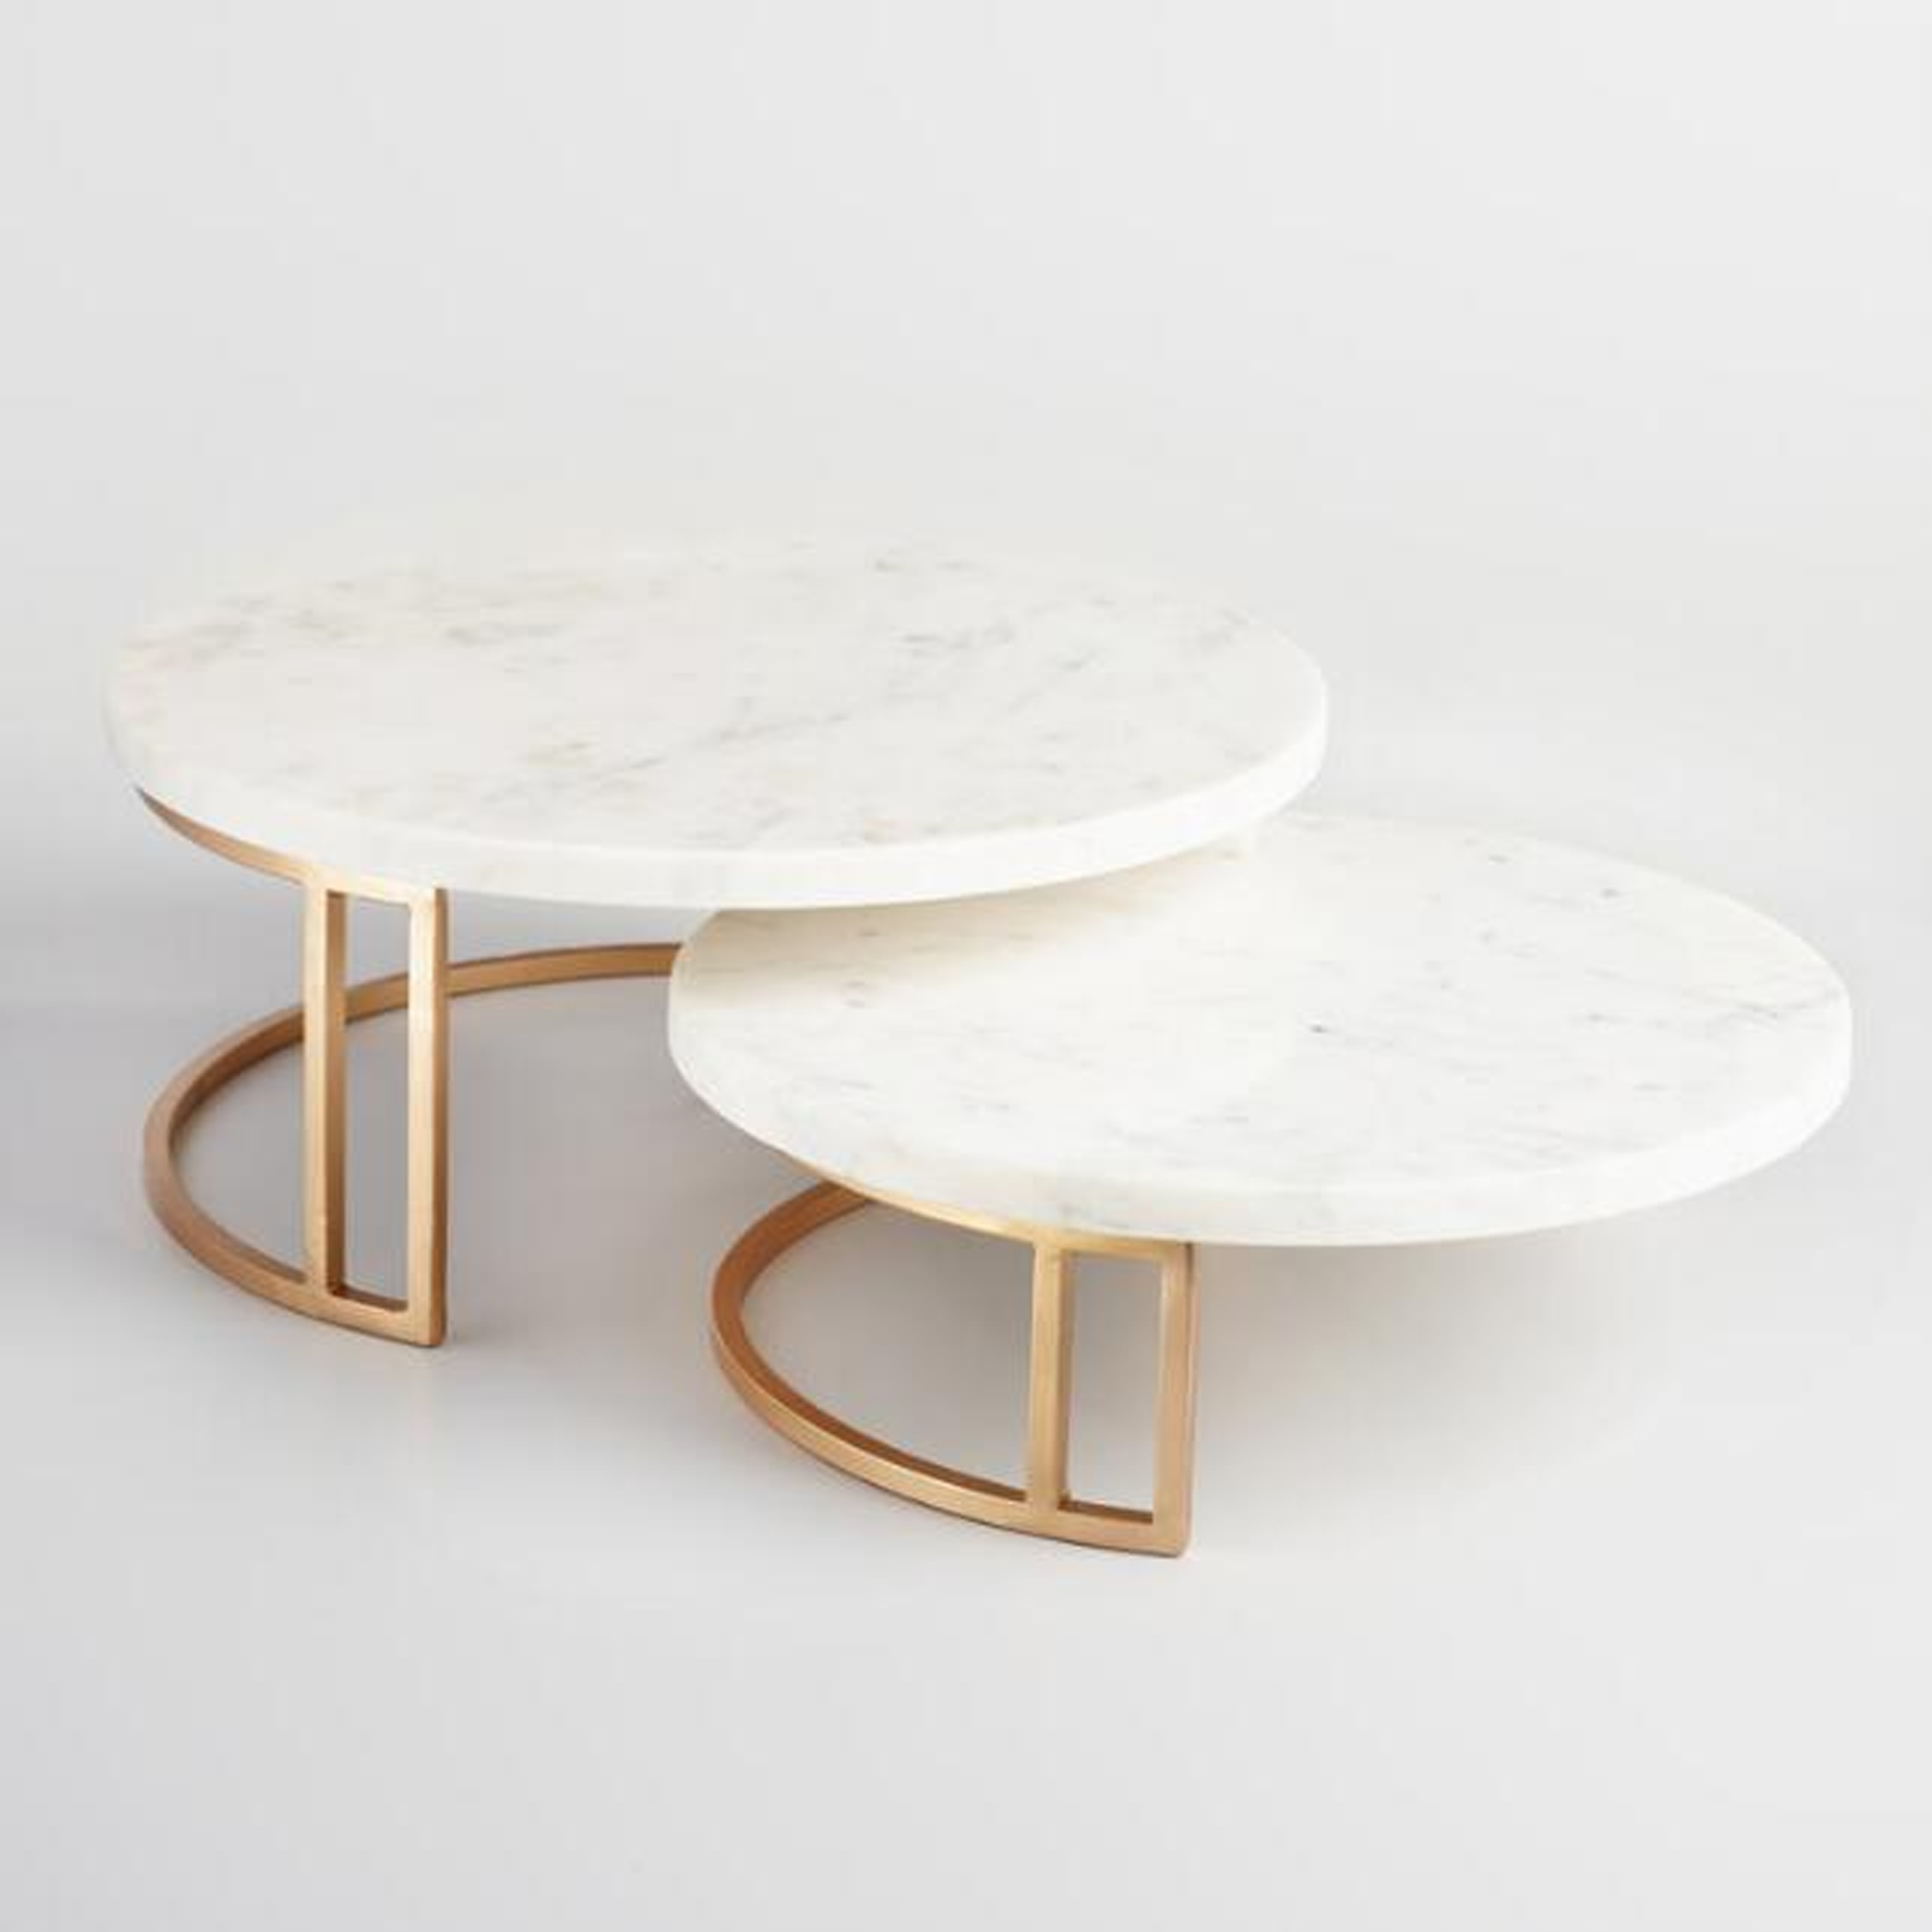 Copy of Marble Stand